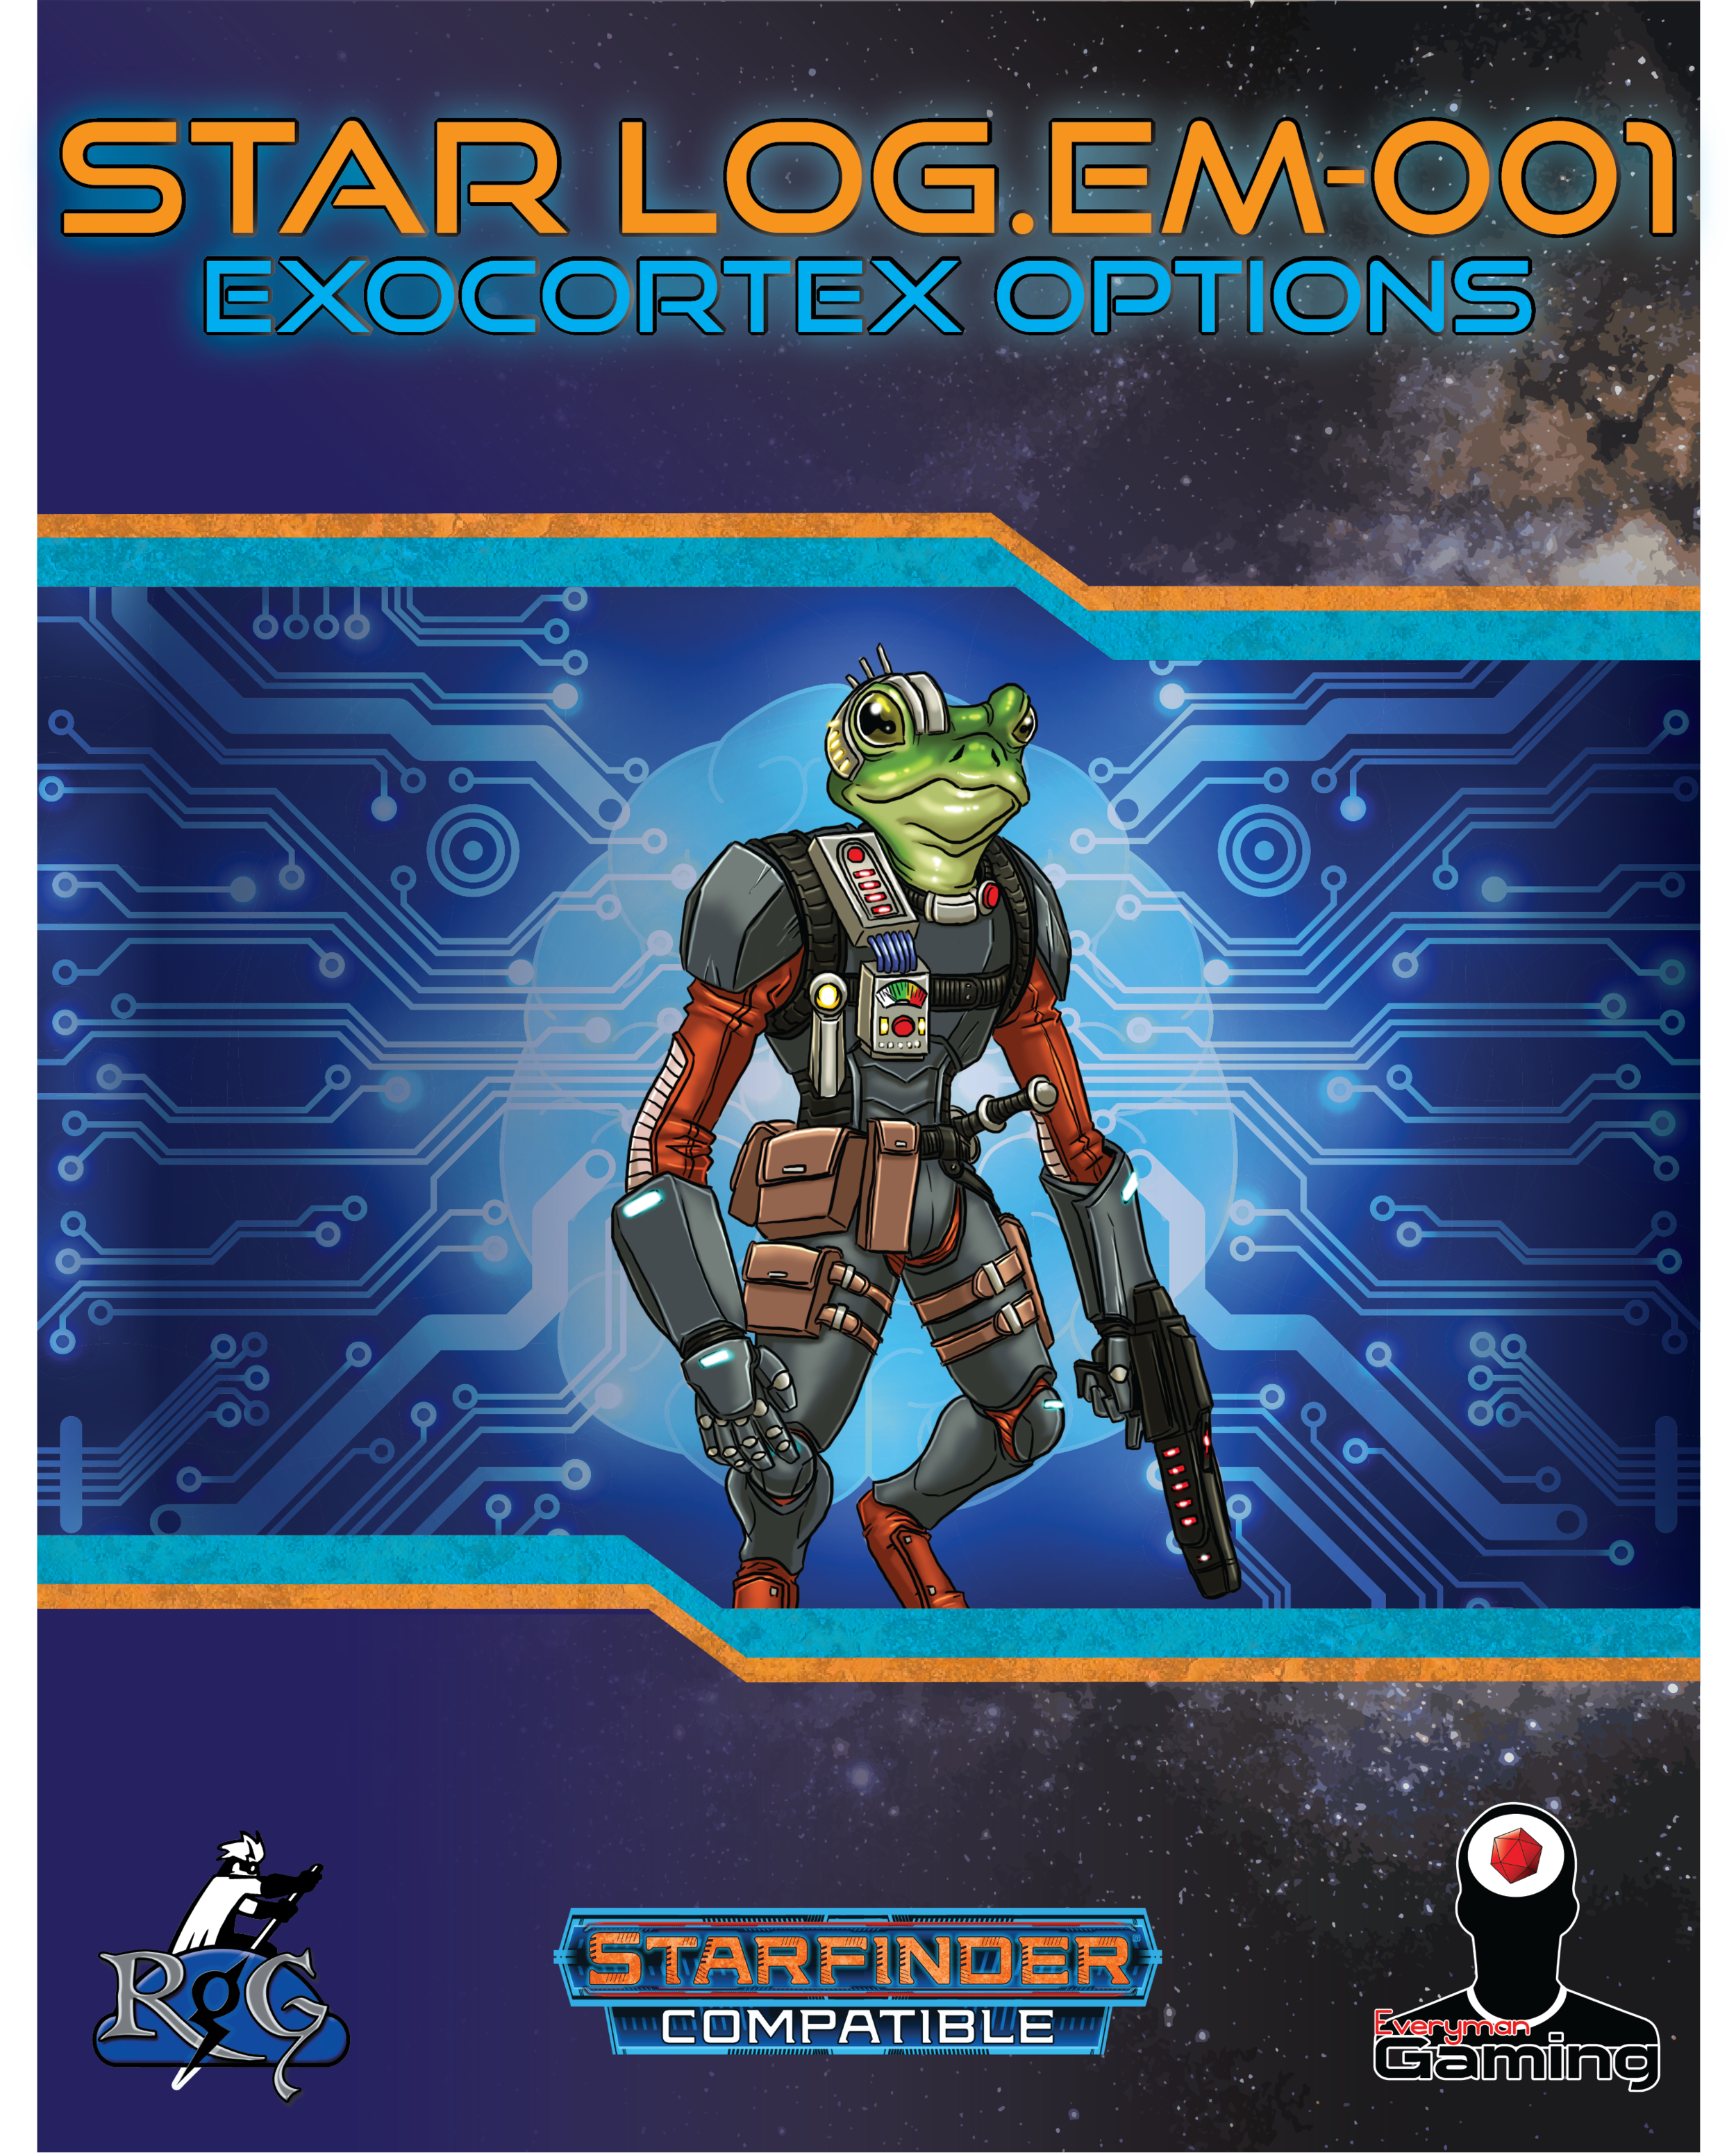 SF001_Exocortex Options.png